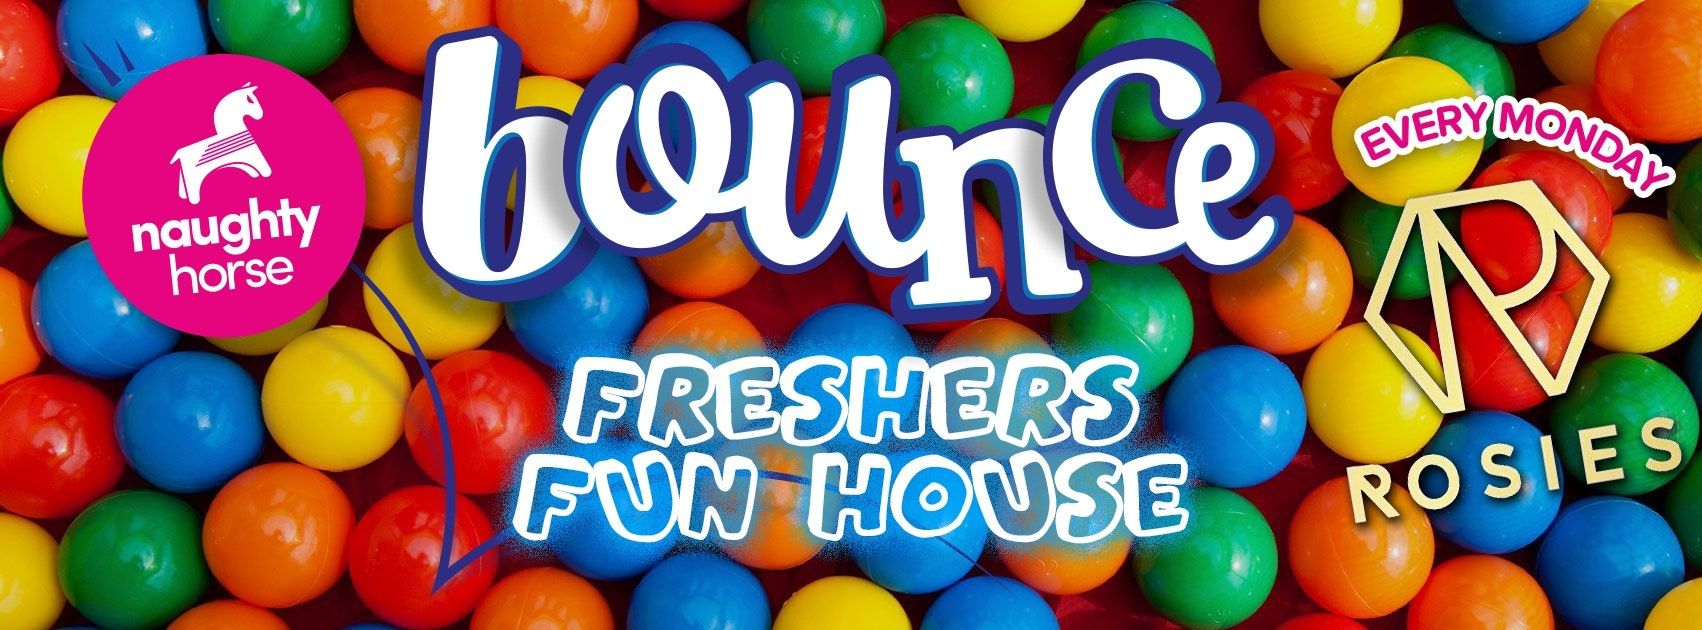 Bounce Mondays presents THE FRESHERS FUN HOUSE at Rosies! (BCU/UCB)